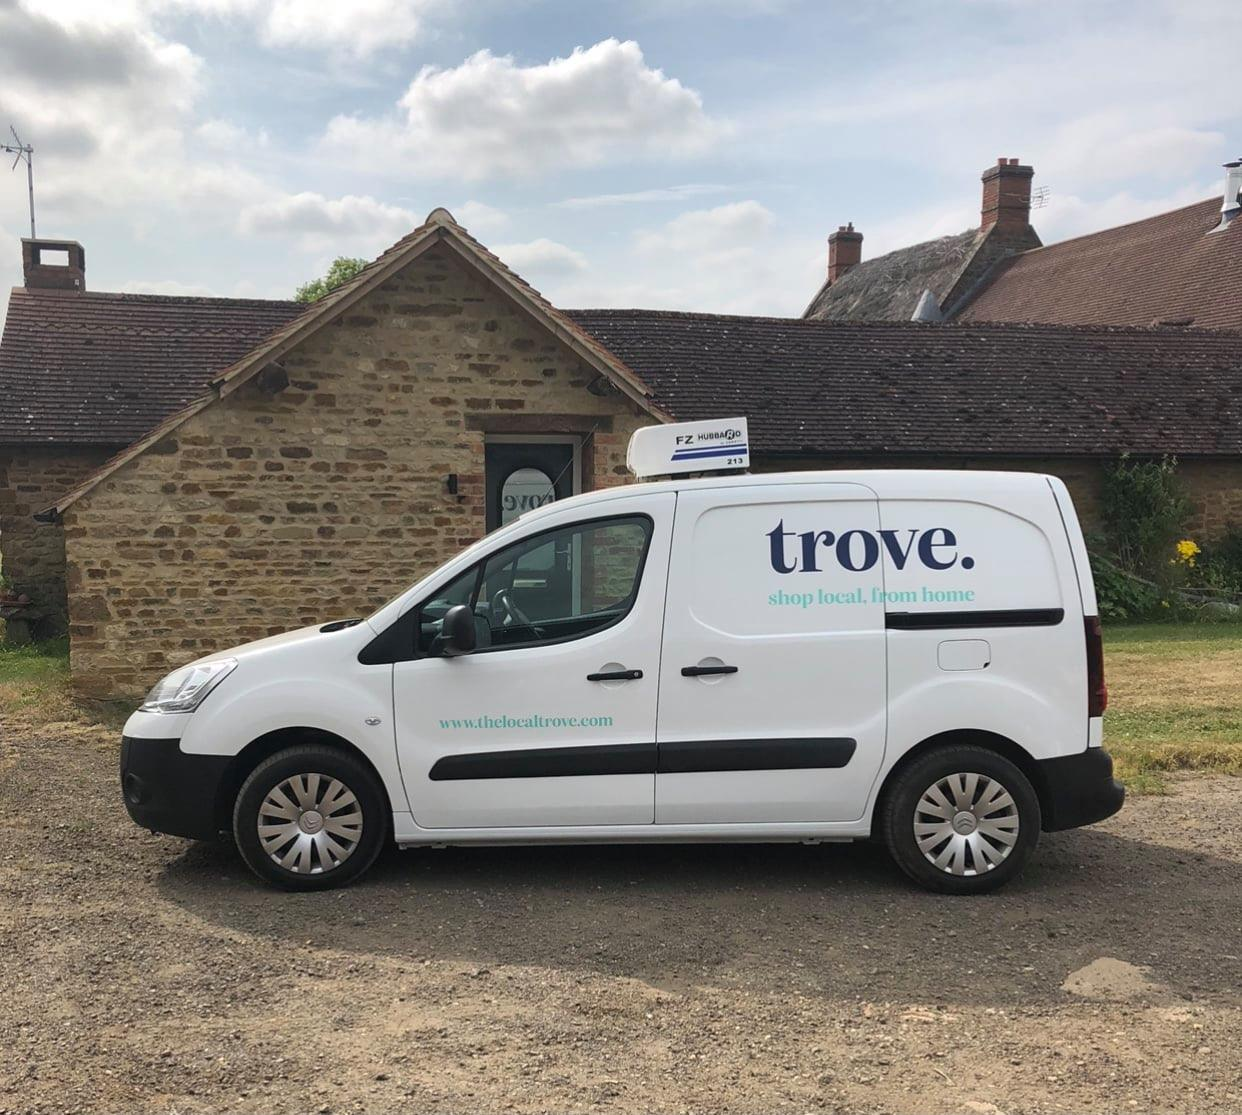 A van parked in front of a house